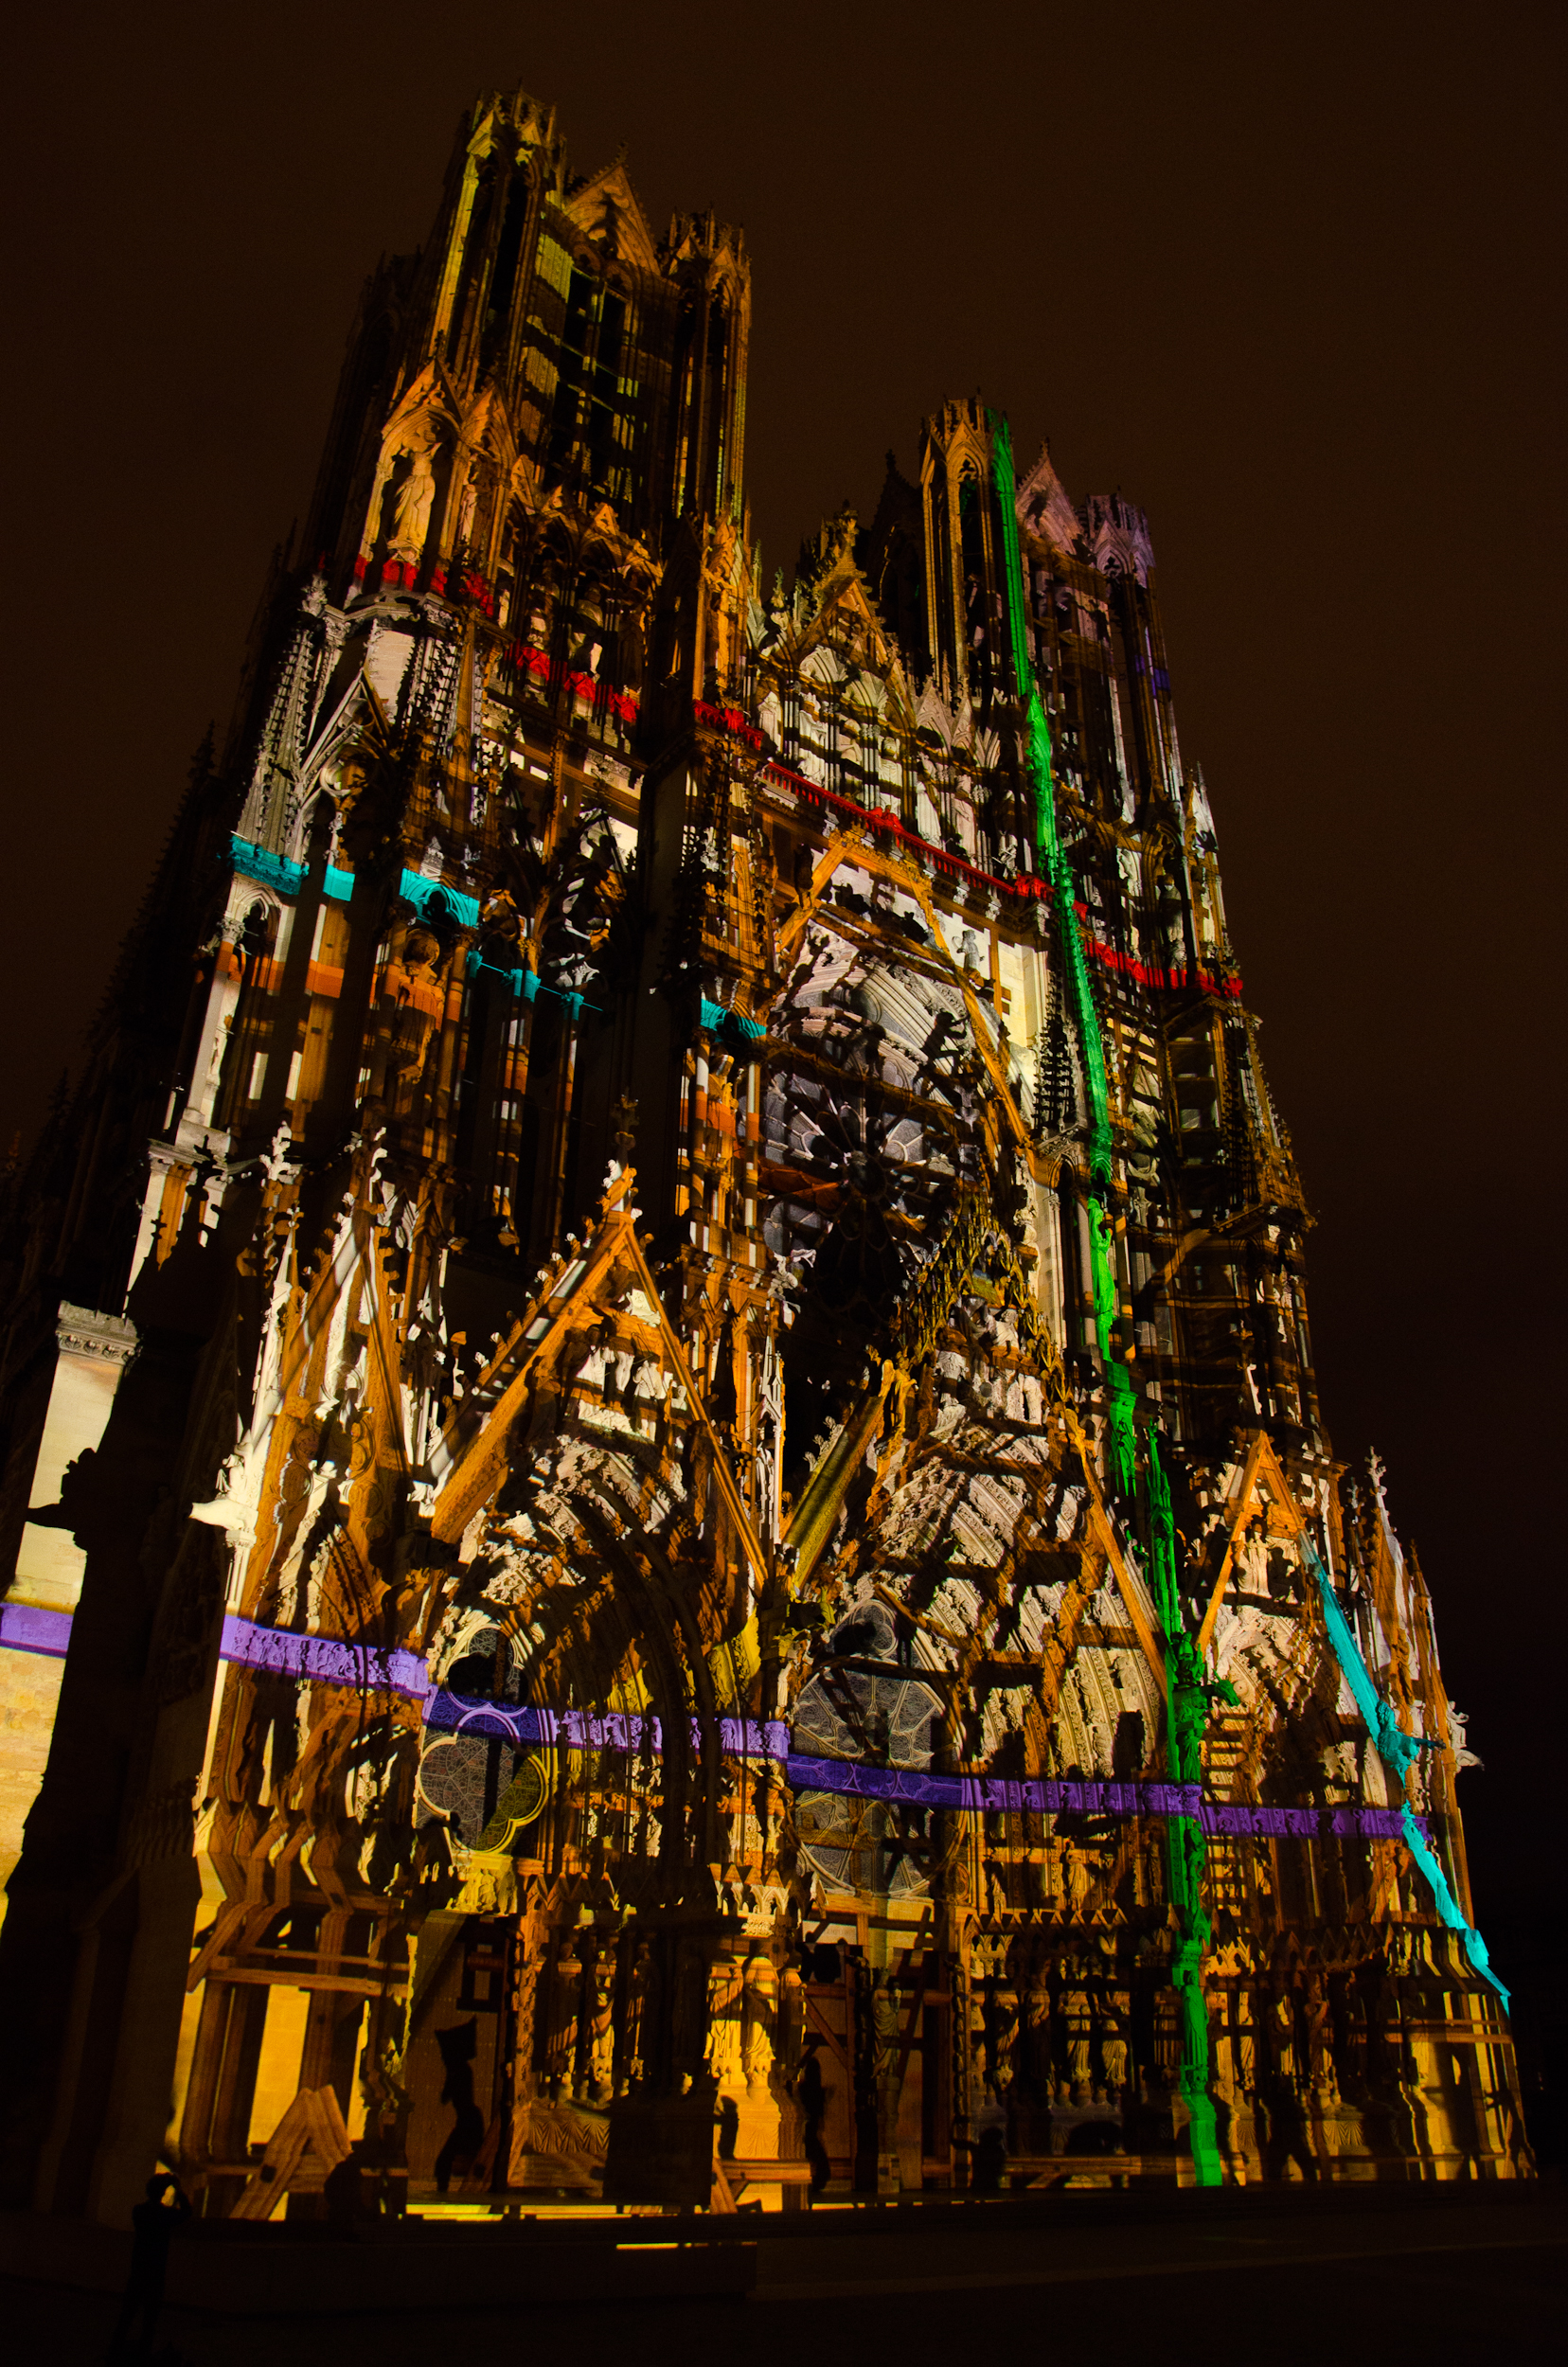 CathedraleReims-3